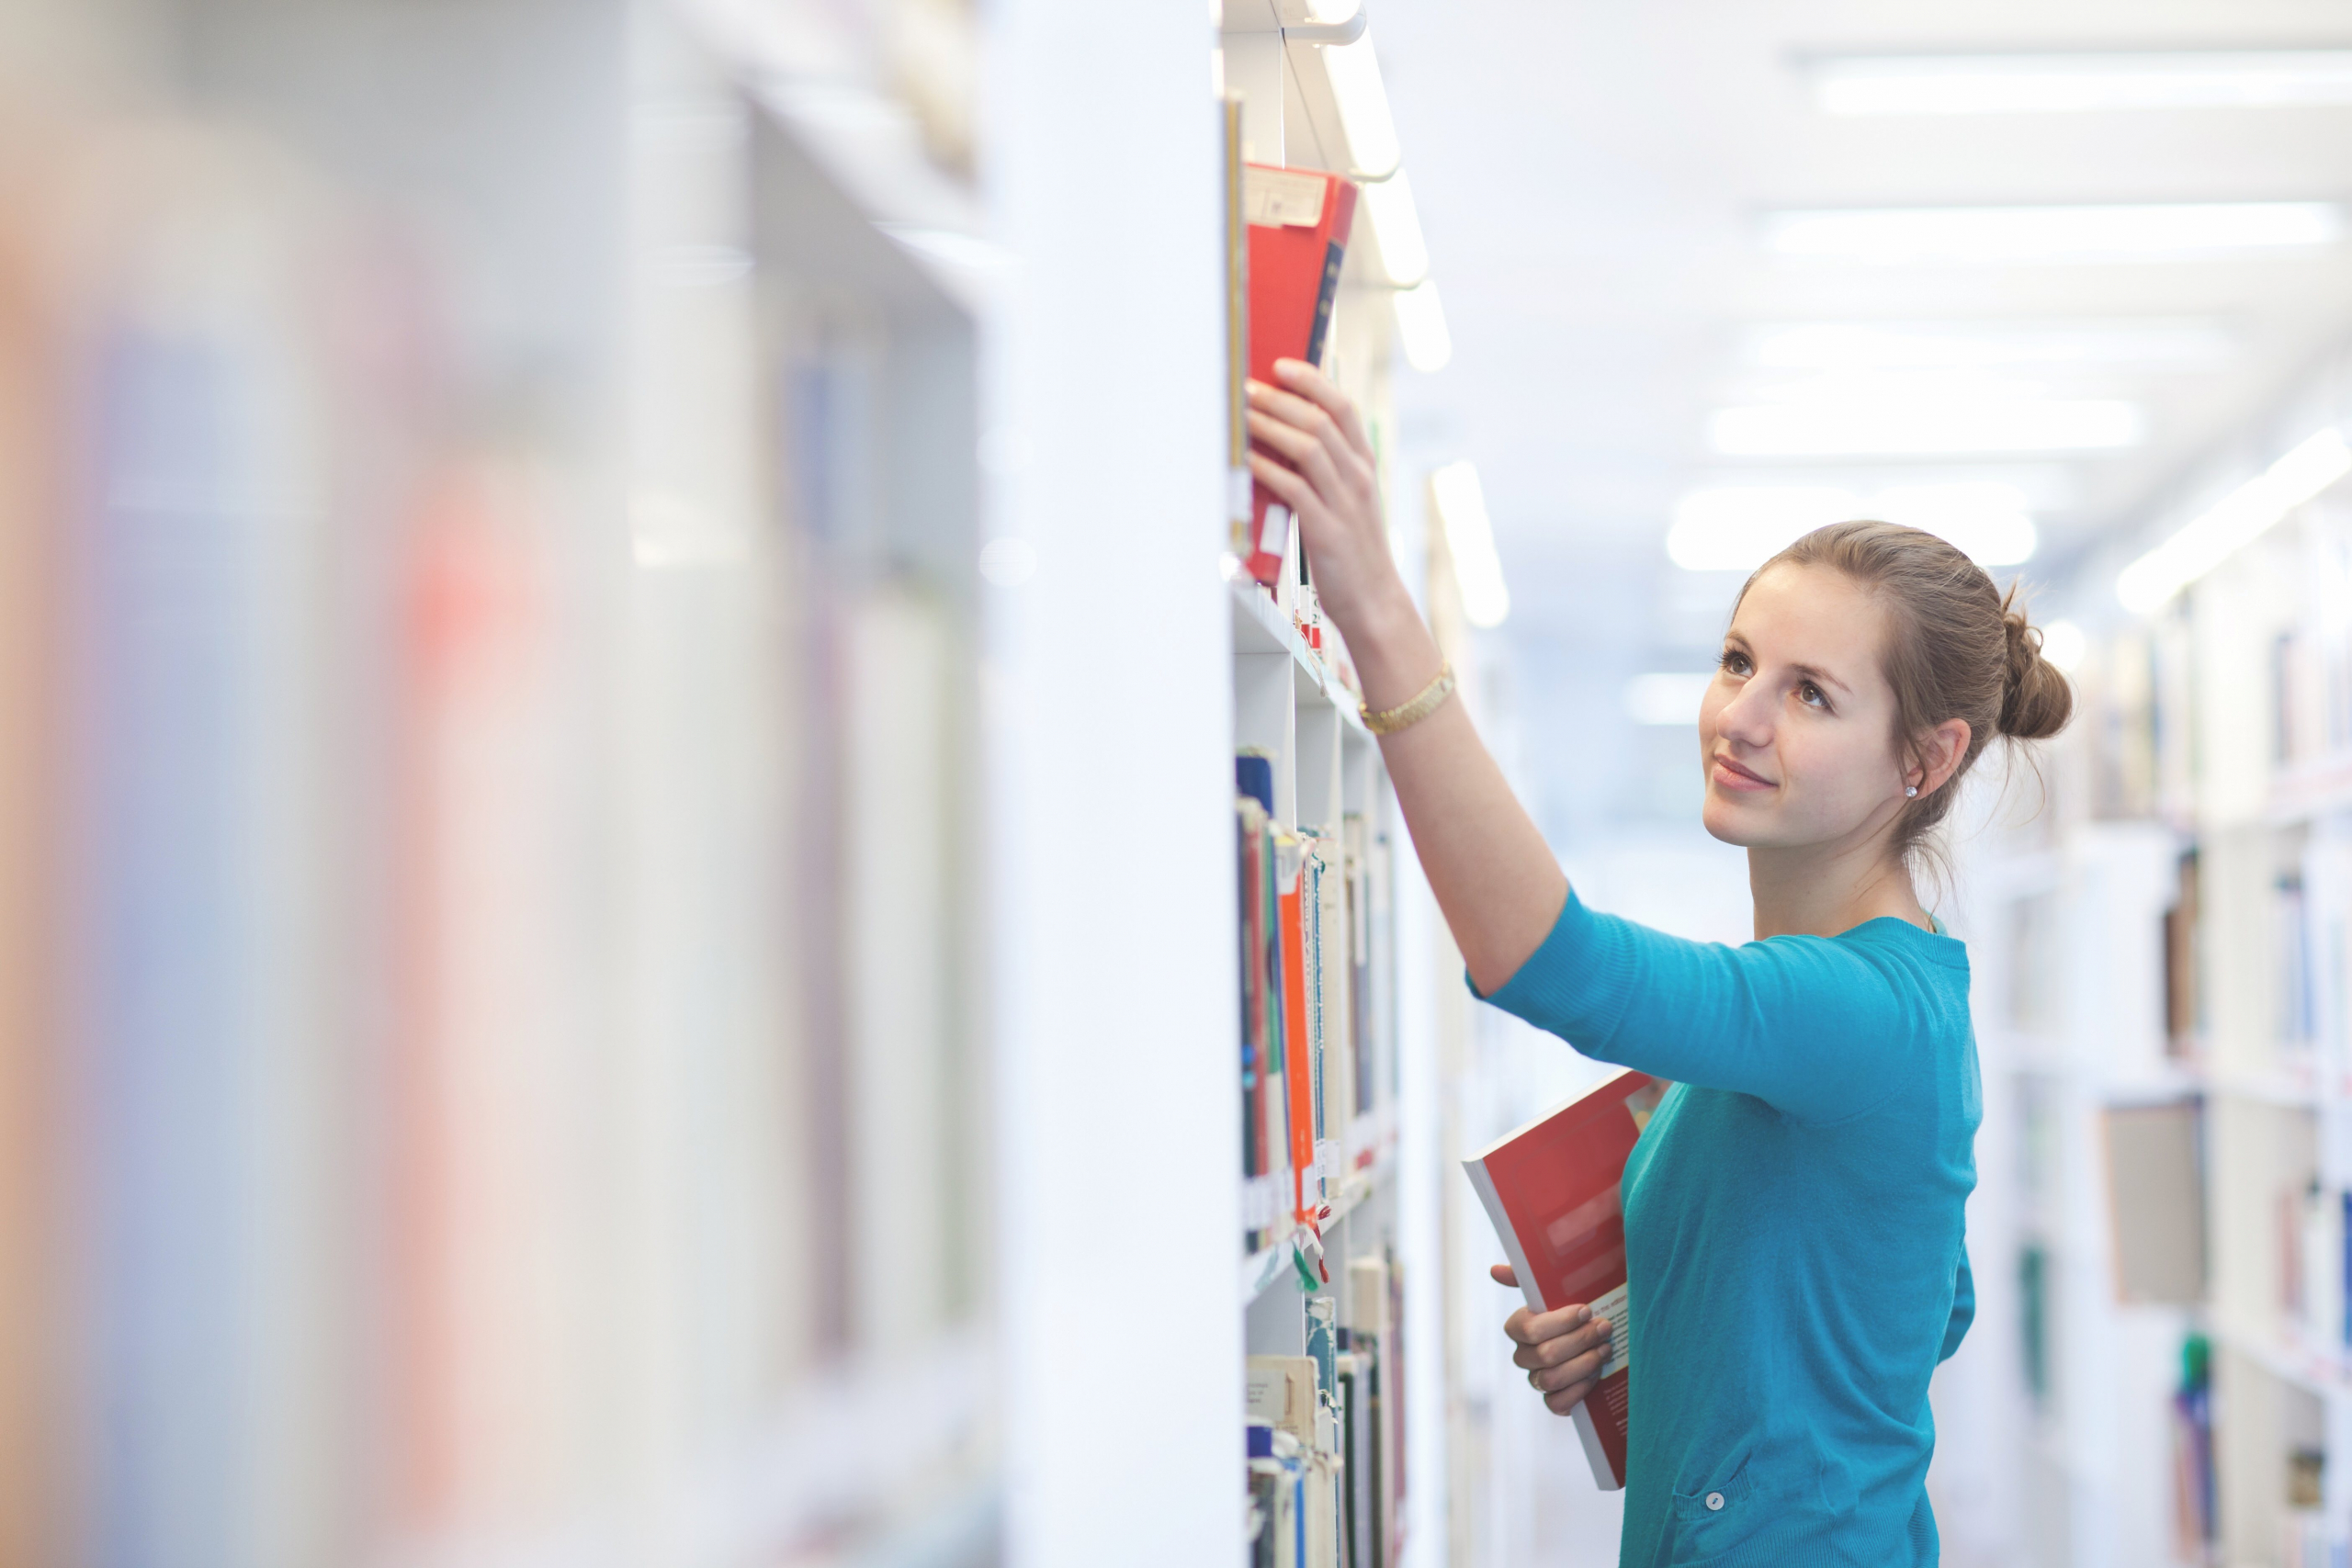 College student grabs book off of shelf in library